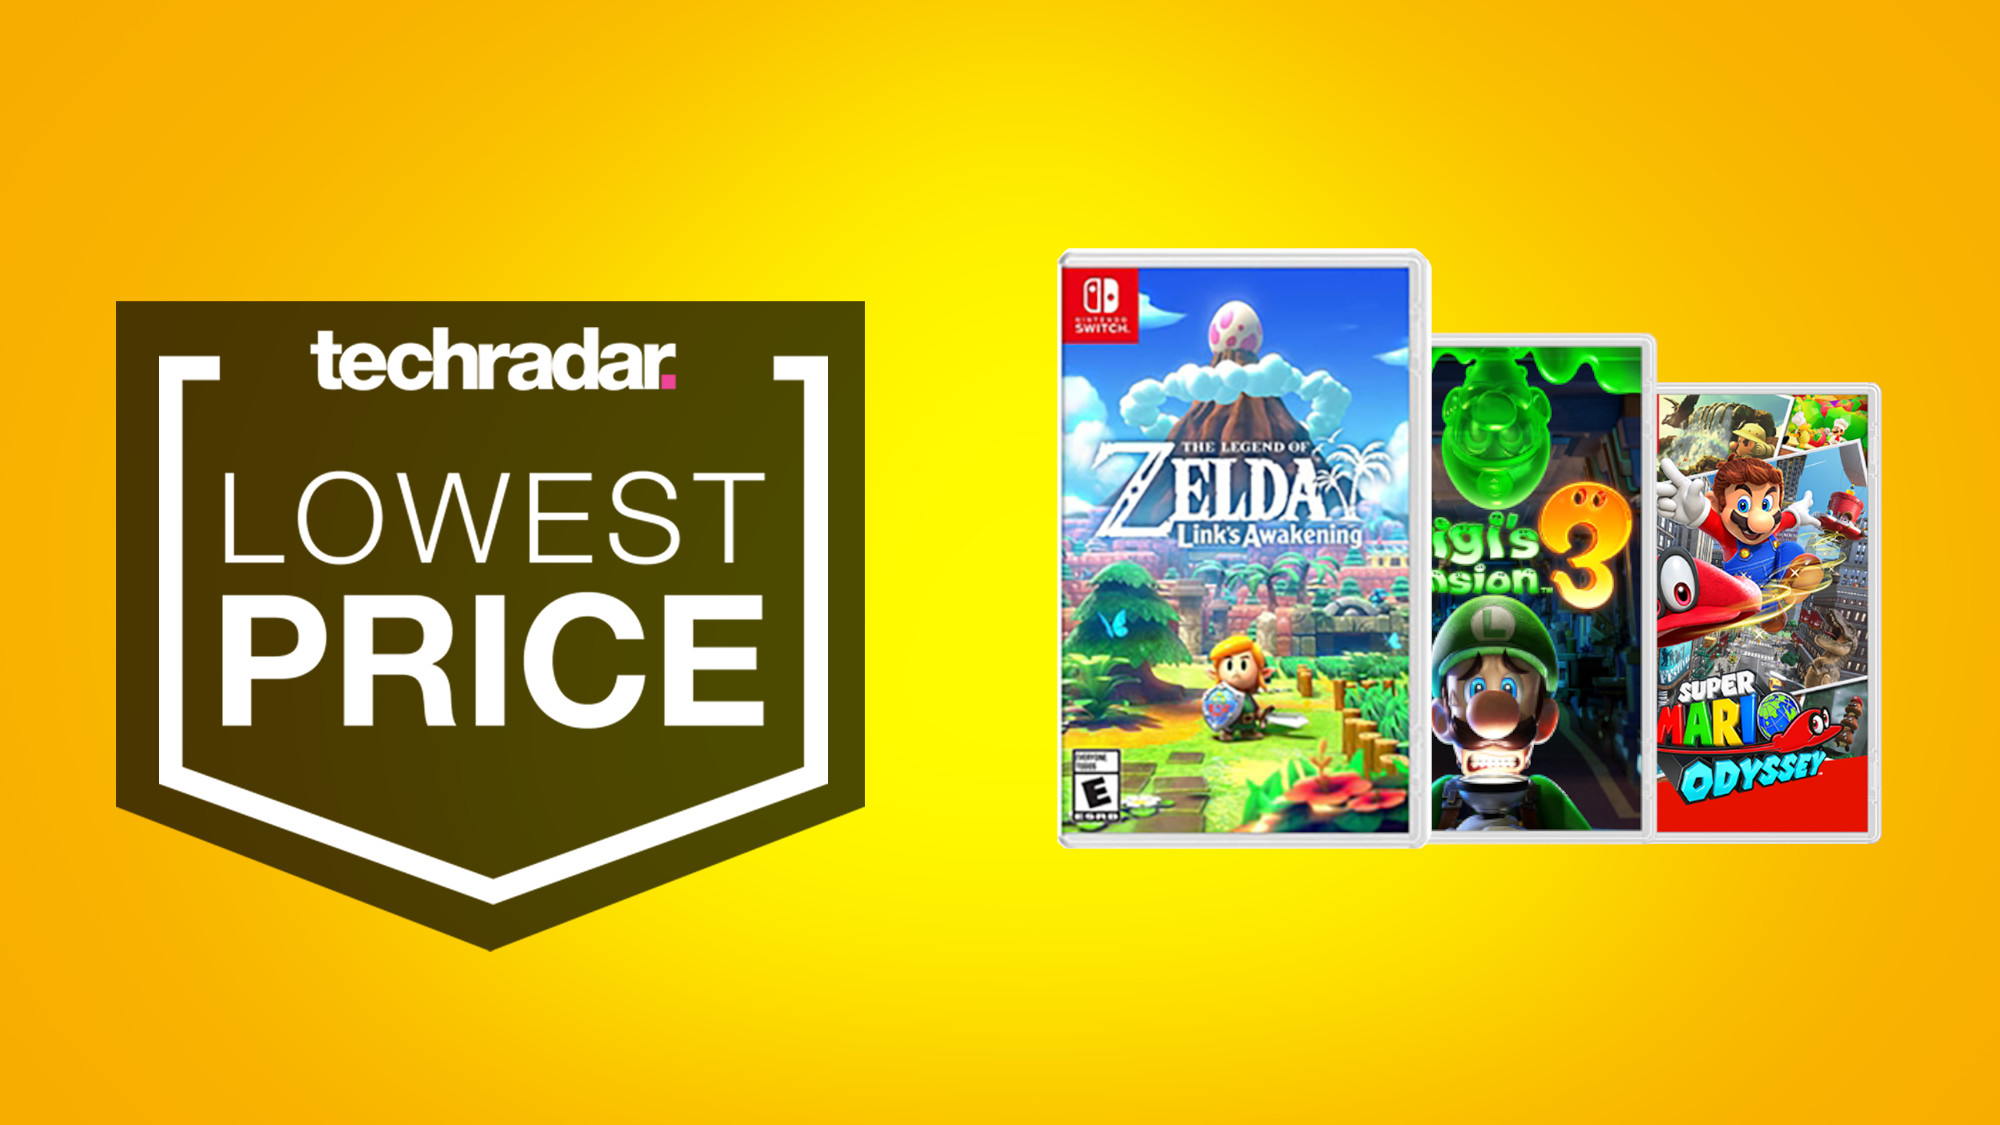 walmart's-latest-nintendo-switch-deals-cut-prices-on-leading-titles-to-just-$39.99